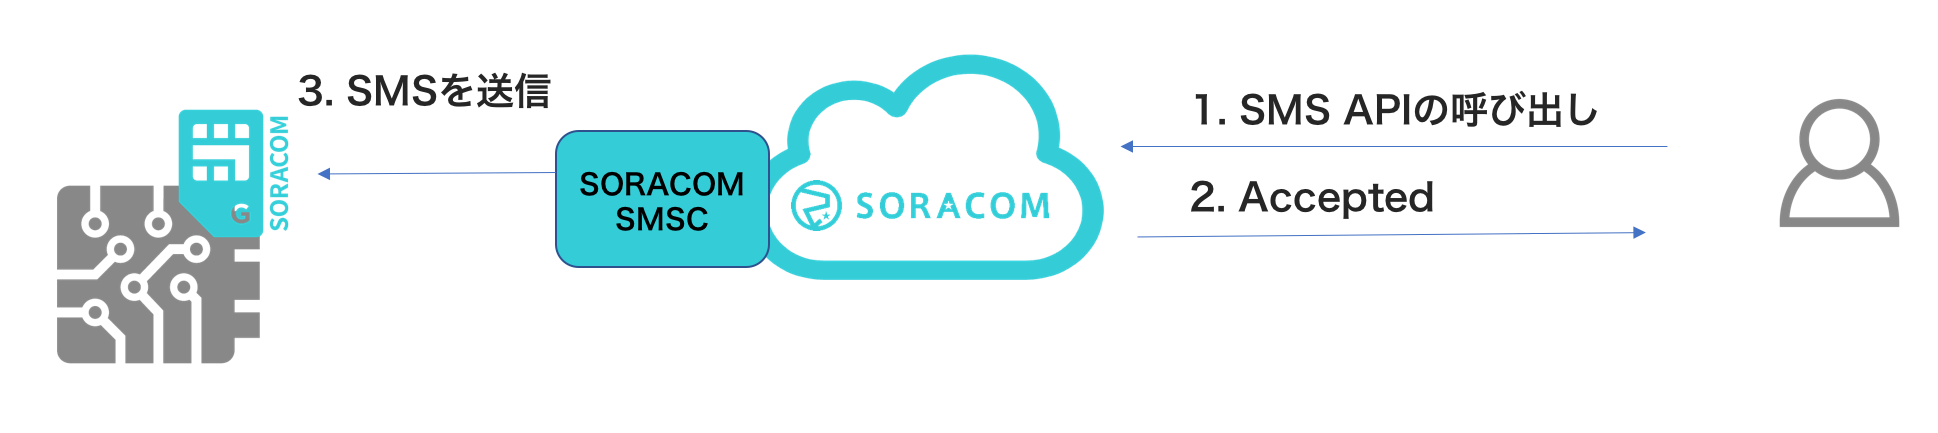 SORACOM Air